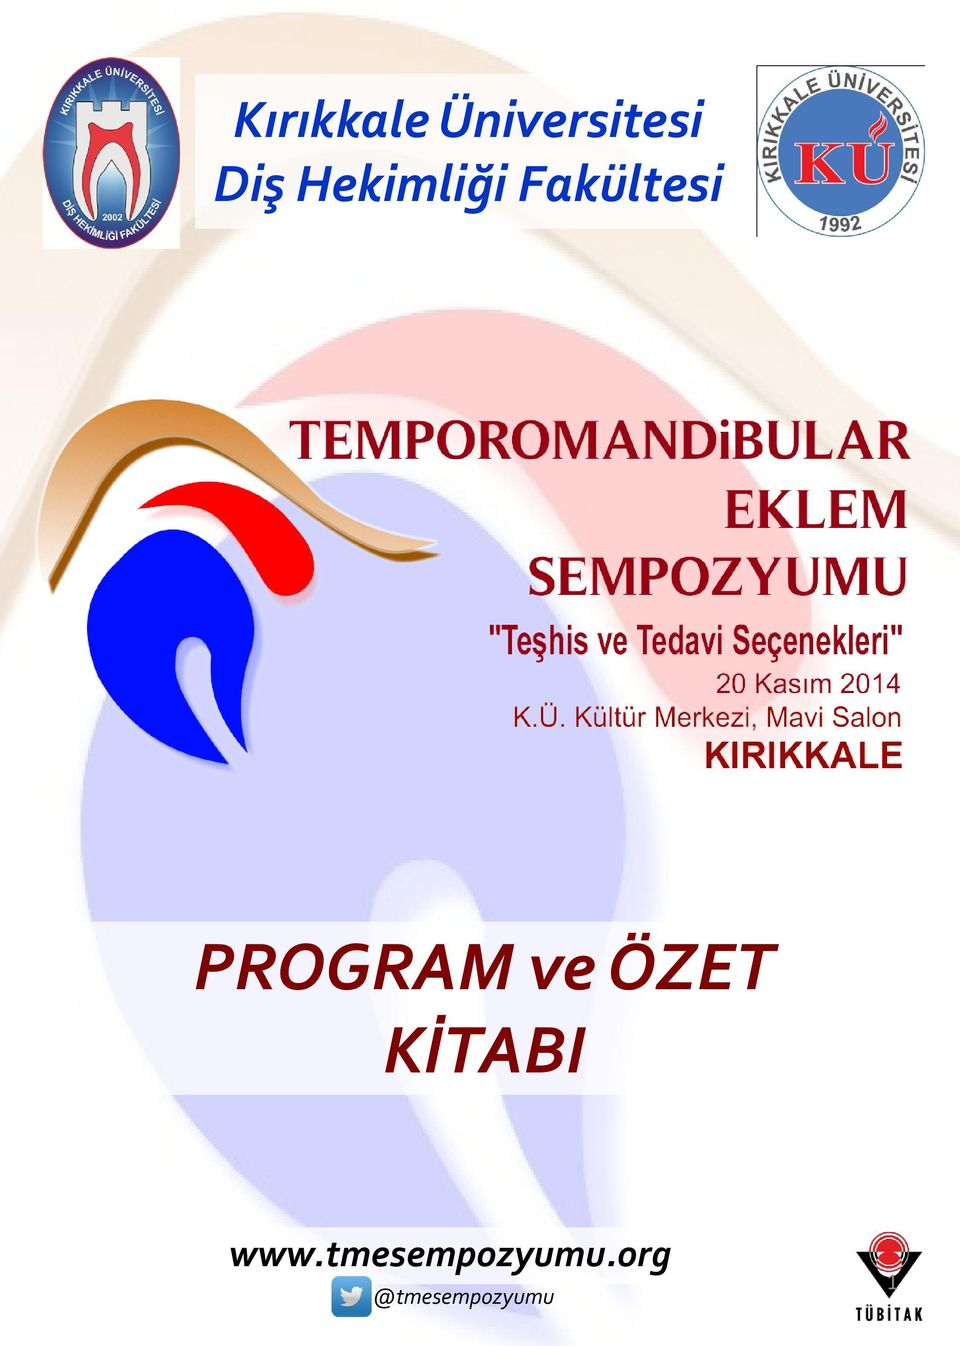 PROGRAM ve ÖZET KİTABI www.